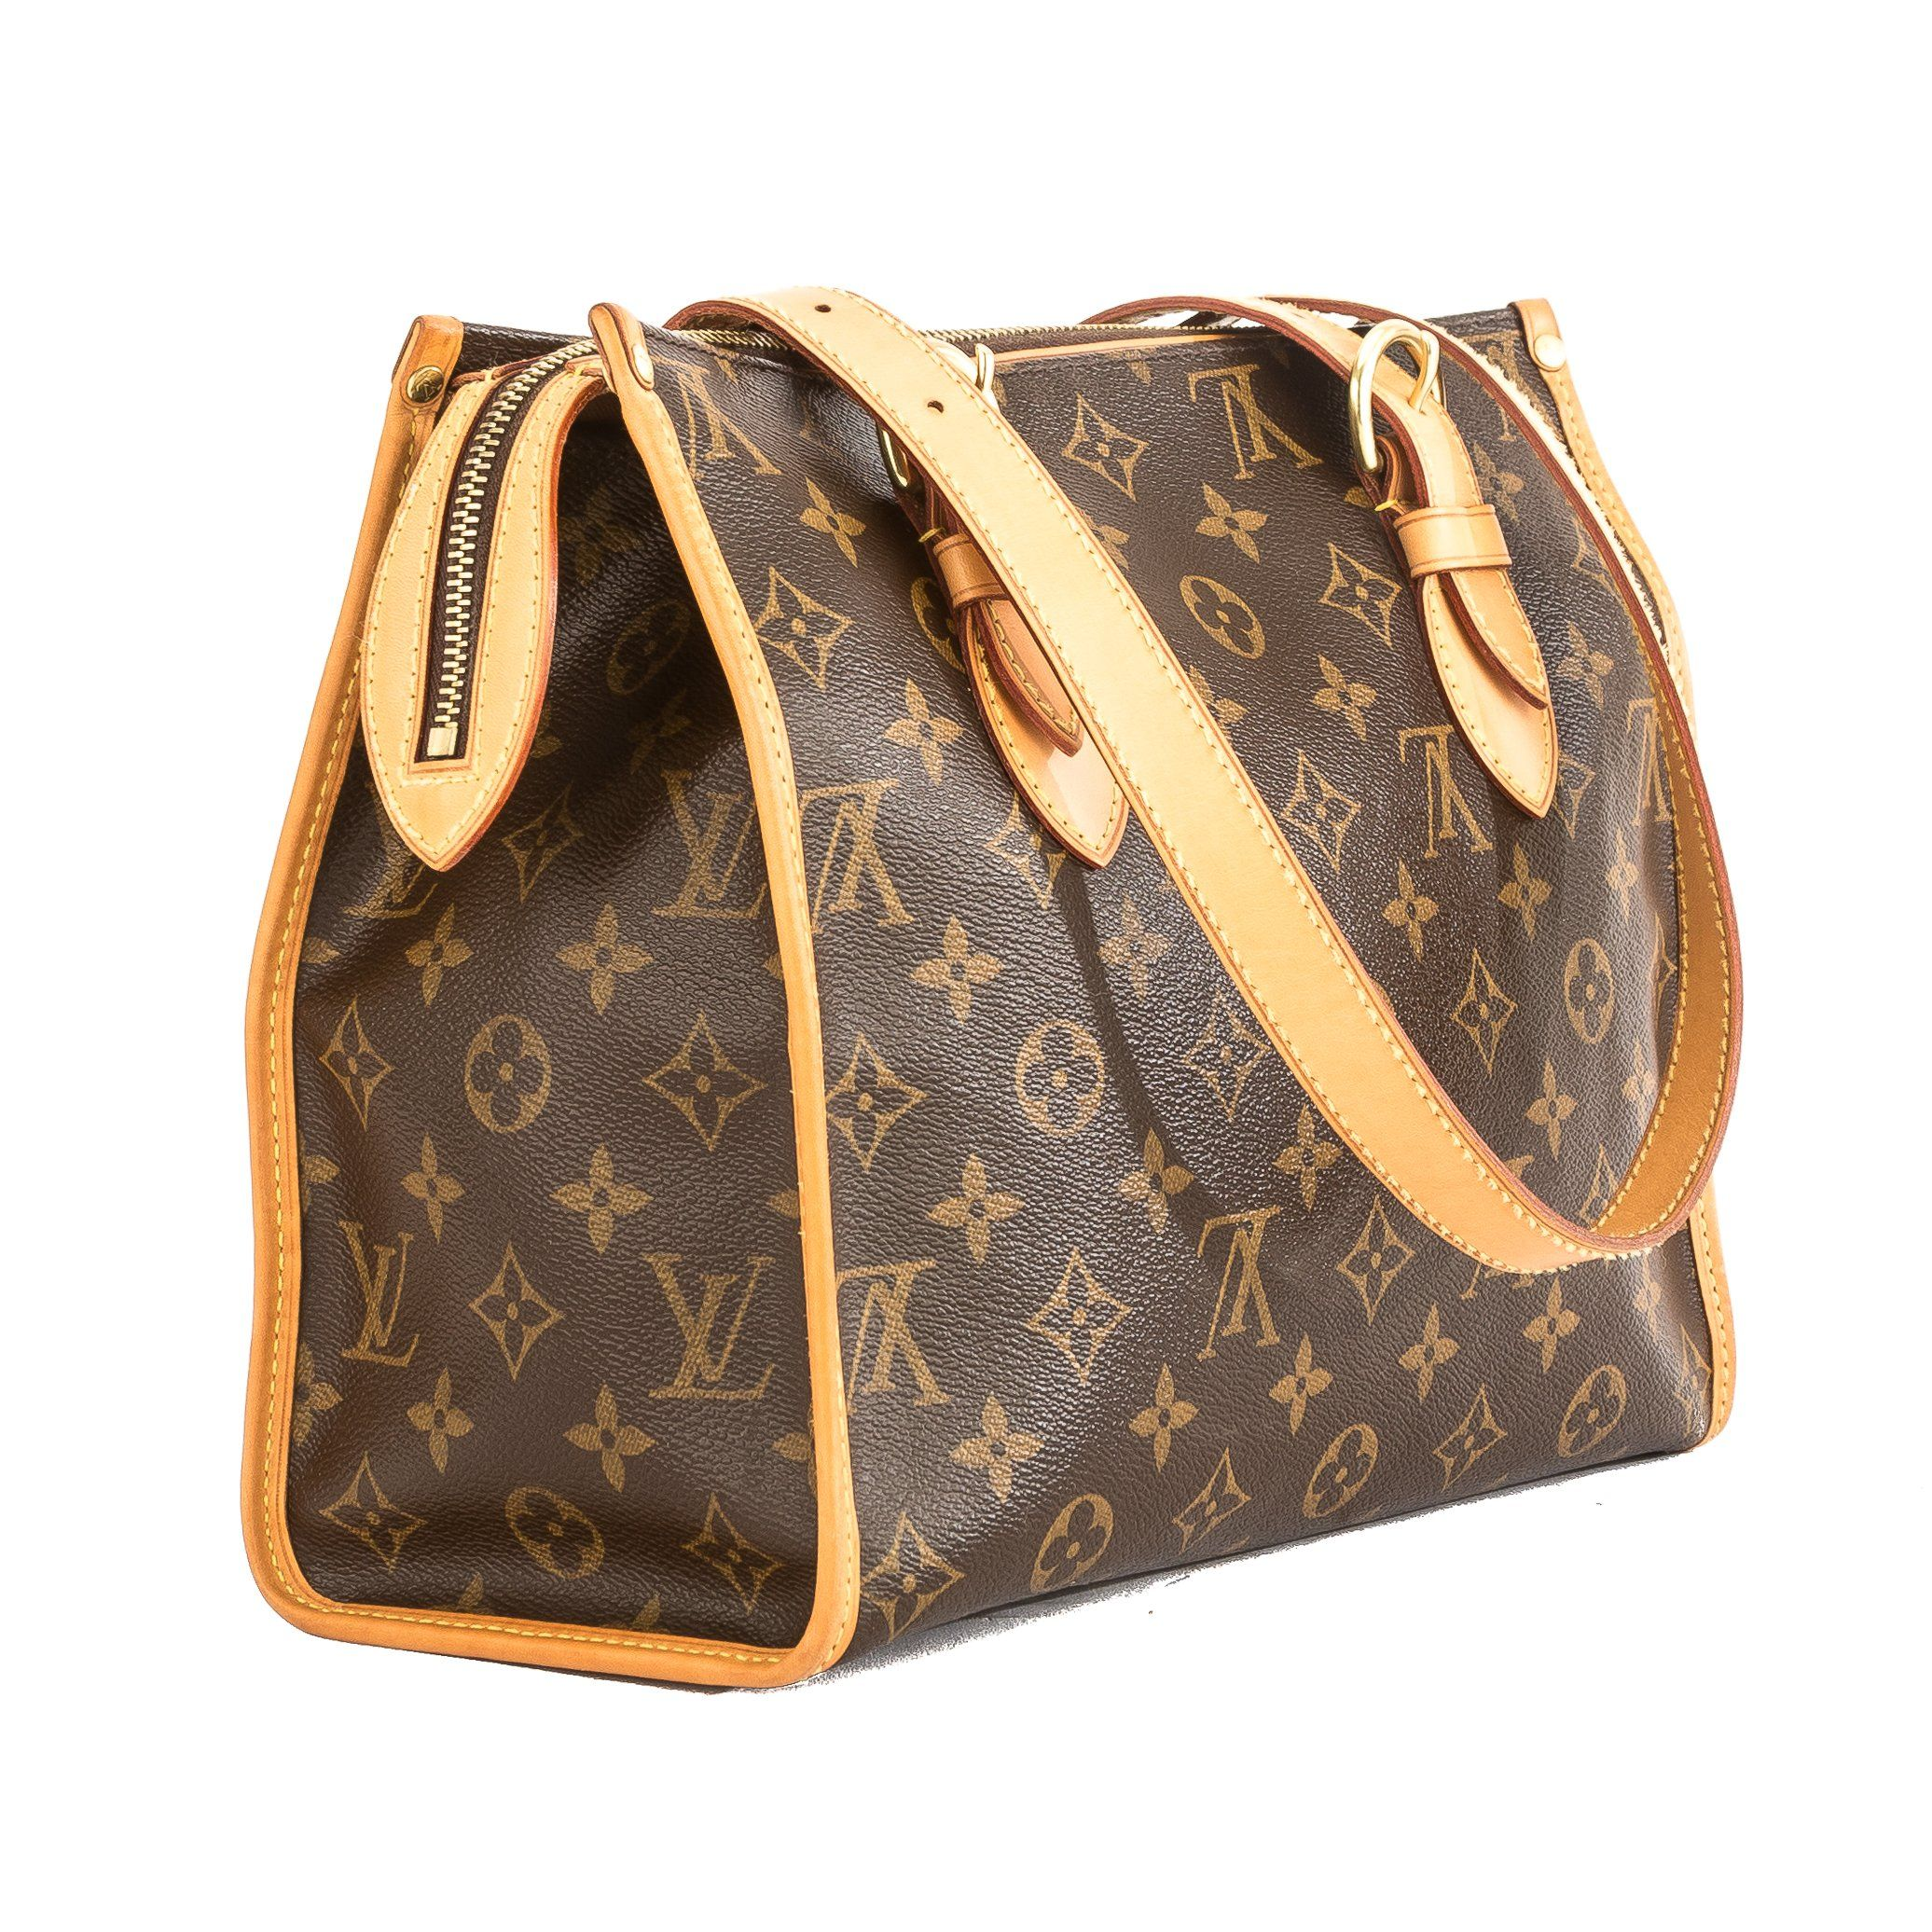 3fca3f58871a Louis Vuitton Monogram Canvas Popincourt Haut Bag (Pre Owned). This is an  authentic